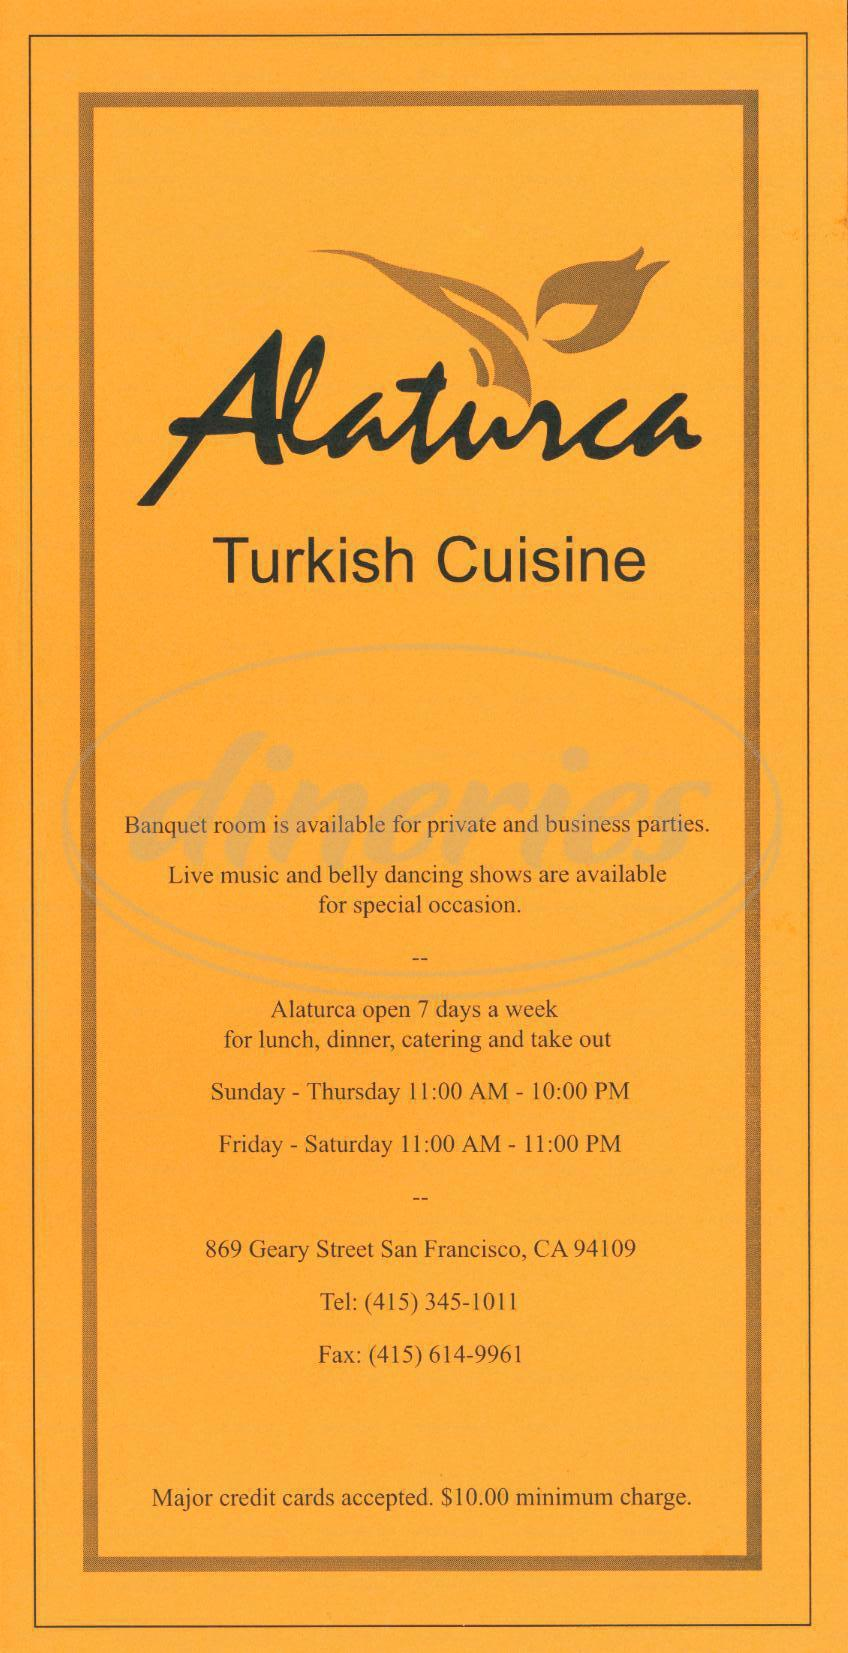 menu for Alaturca